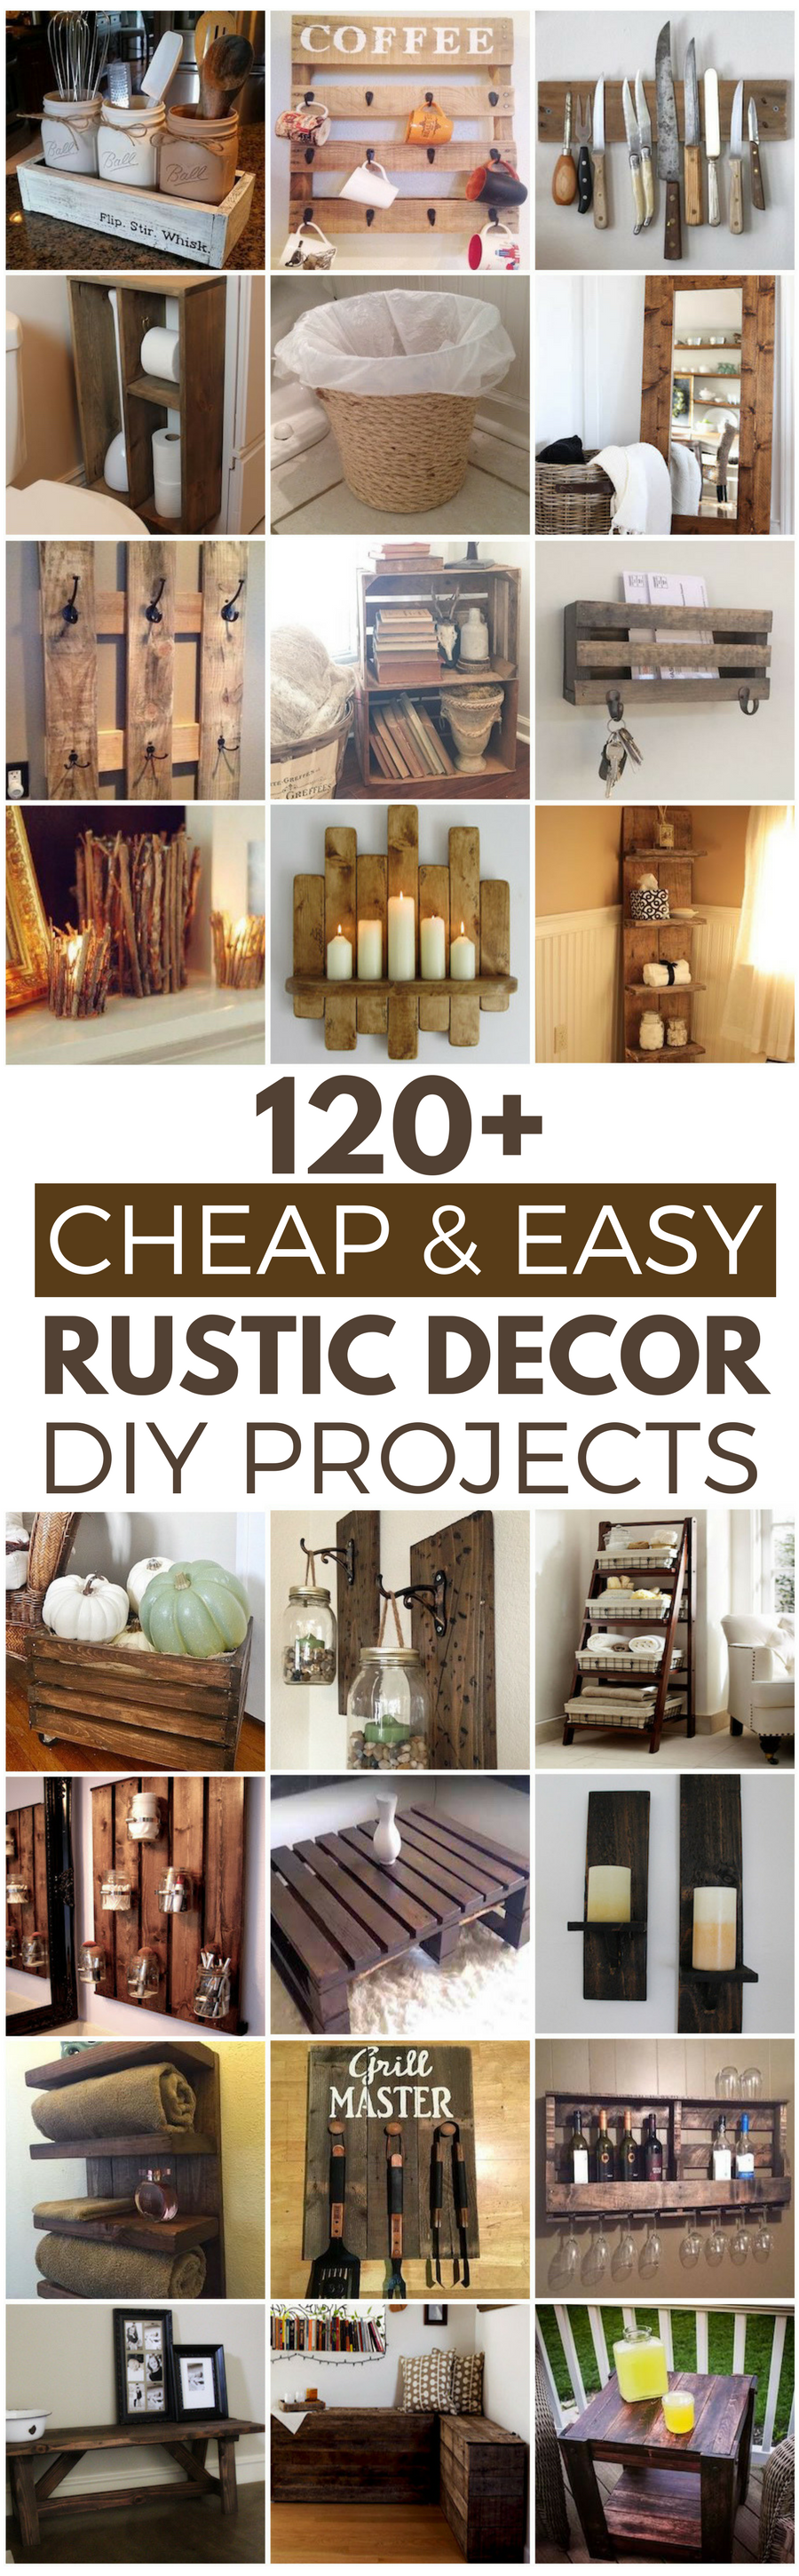 Living Room Decor For Cheap 120 cheap and easy diy rustic home decor ideas | house, craft and